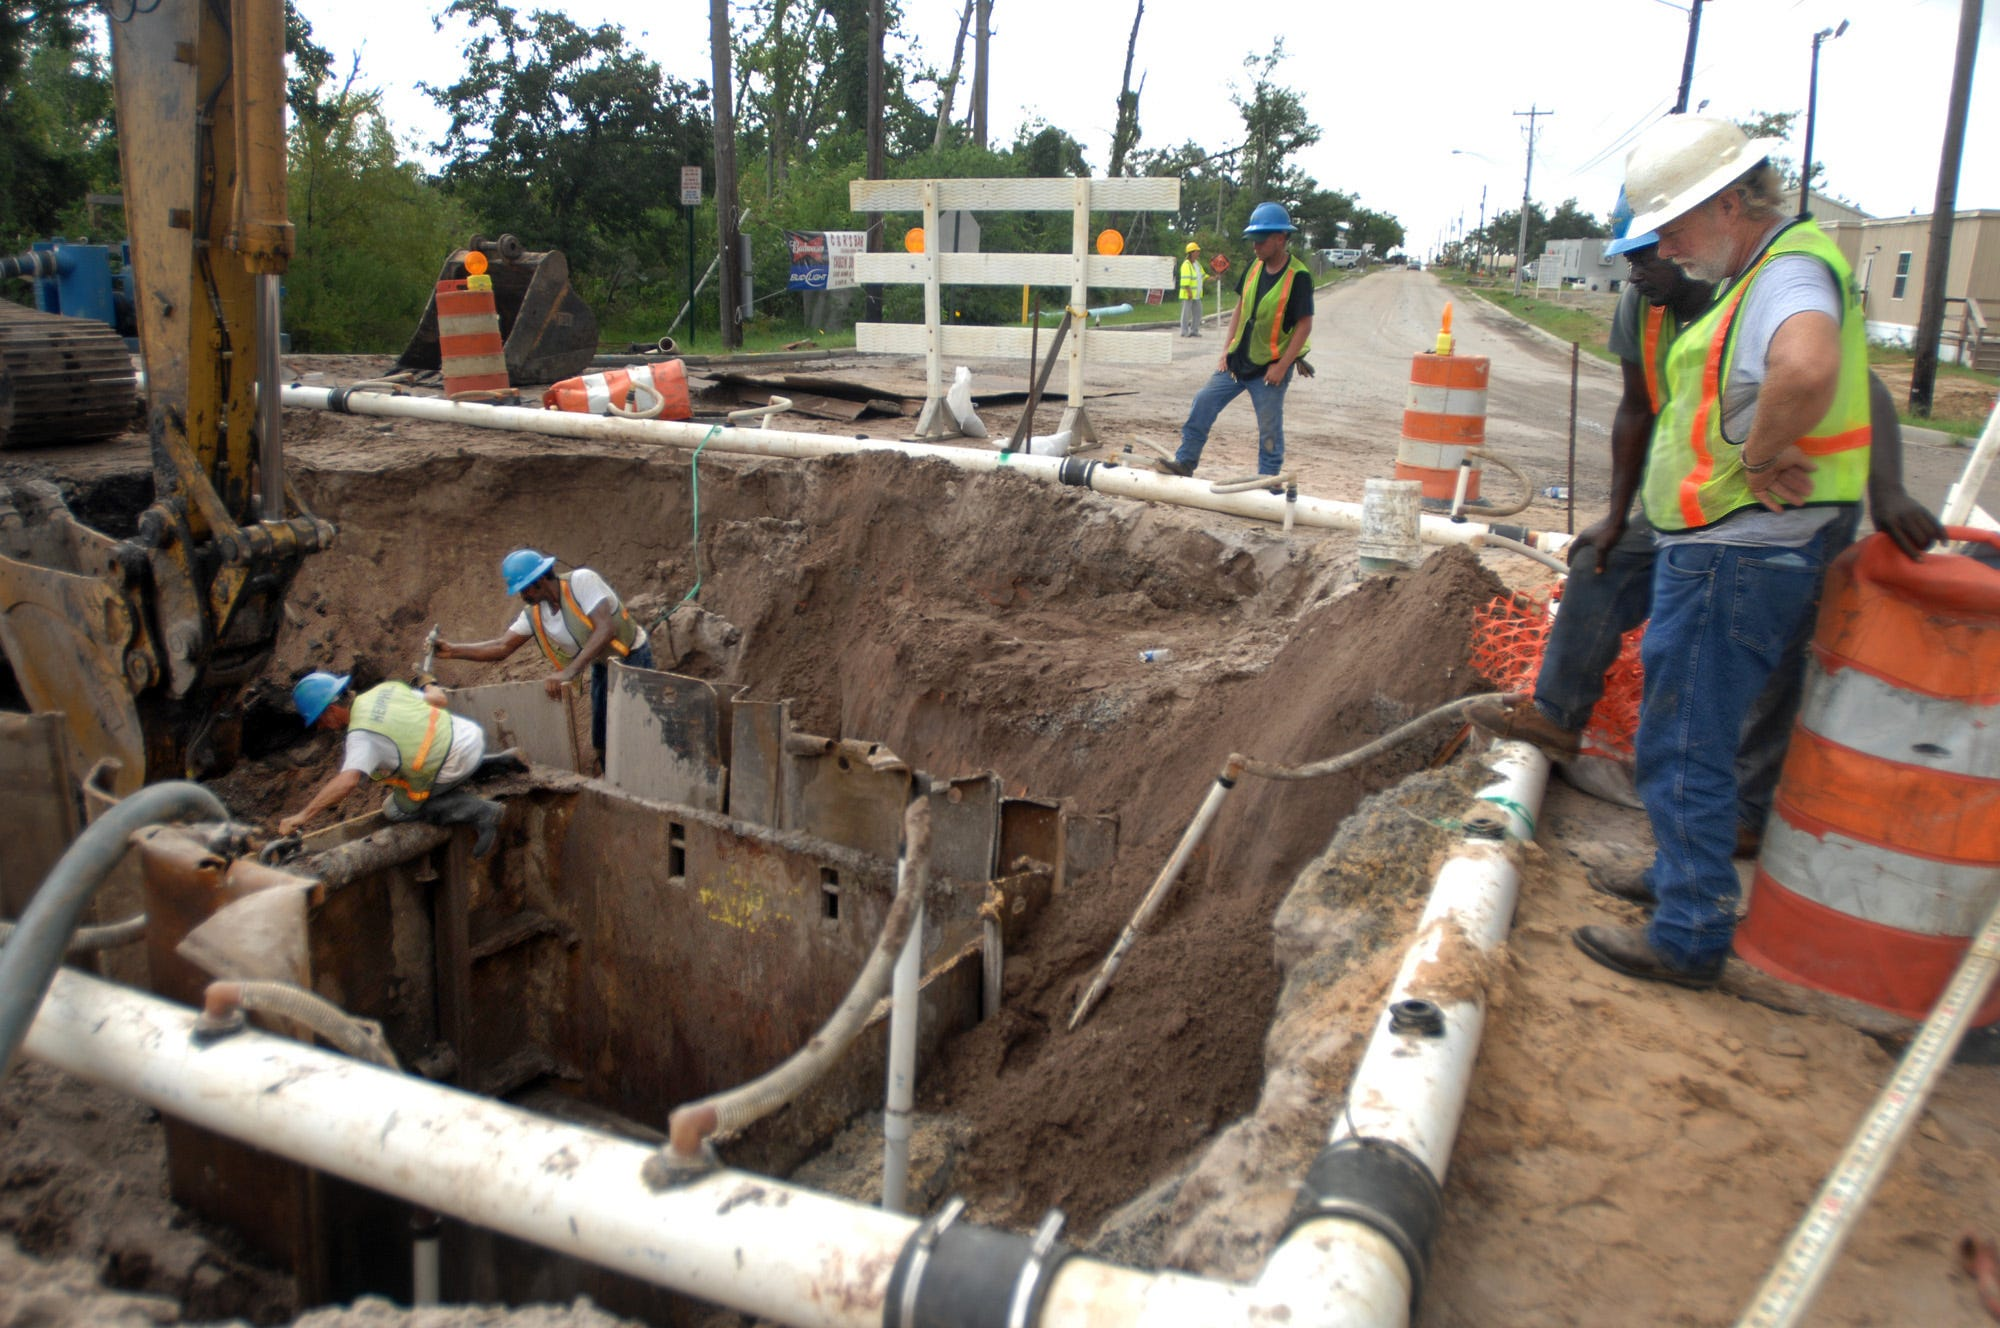 Why the city continues to have unresolved water, sewer issues   Clarion Ledger